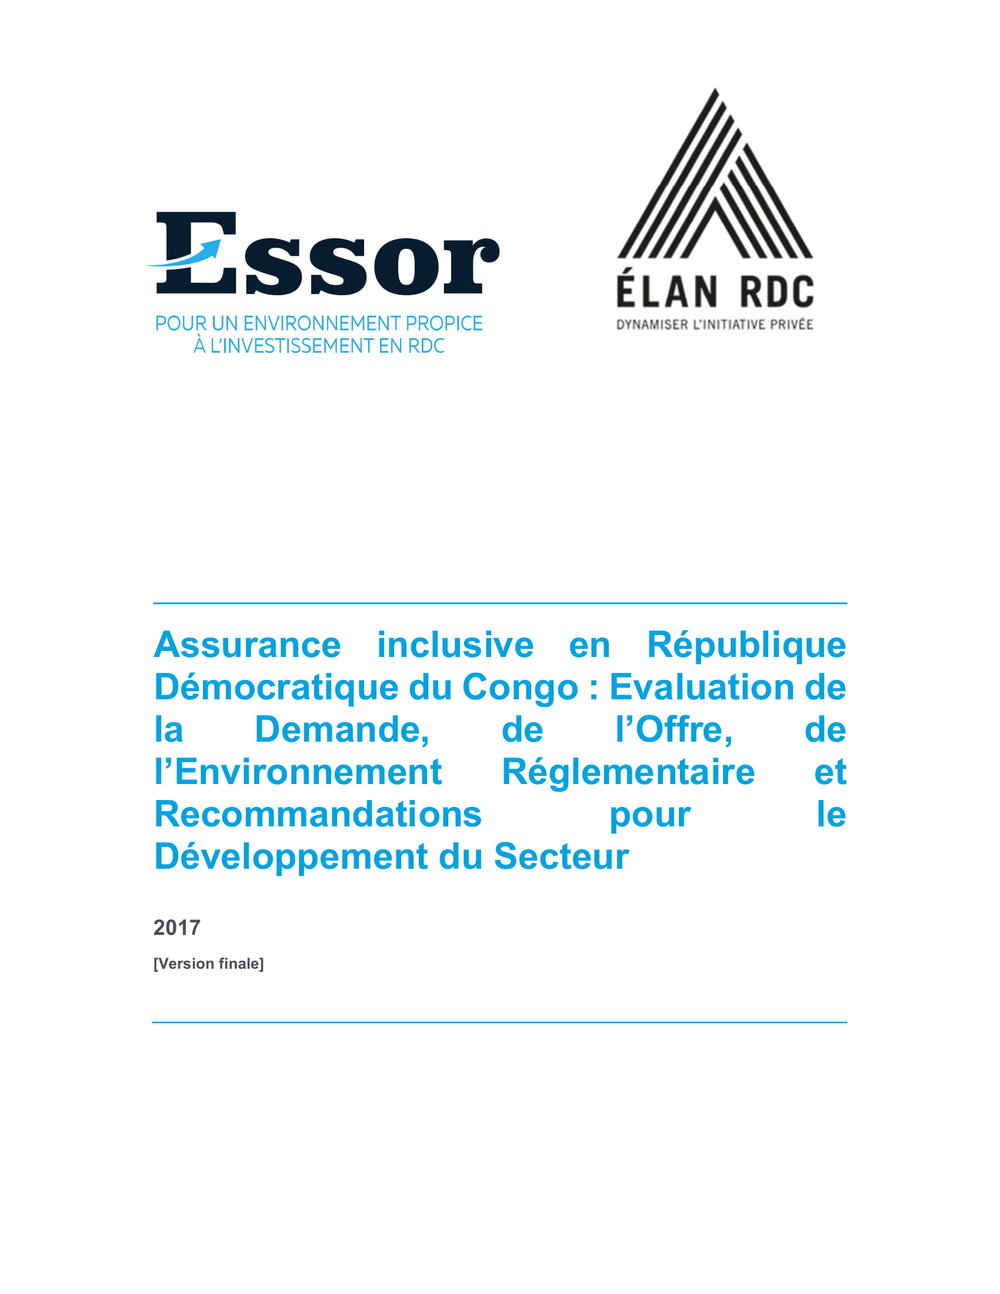 Essor-Elan RDC_Diagnostic de l'Assurance inclusive en RDC_Version finale_cover picture-1.jpg